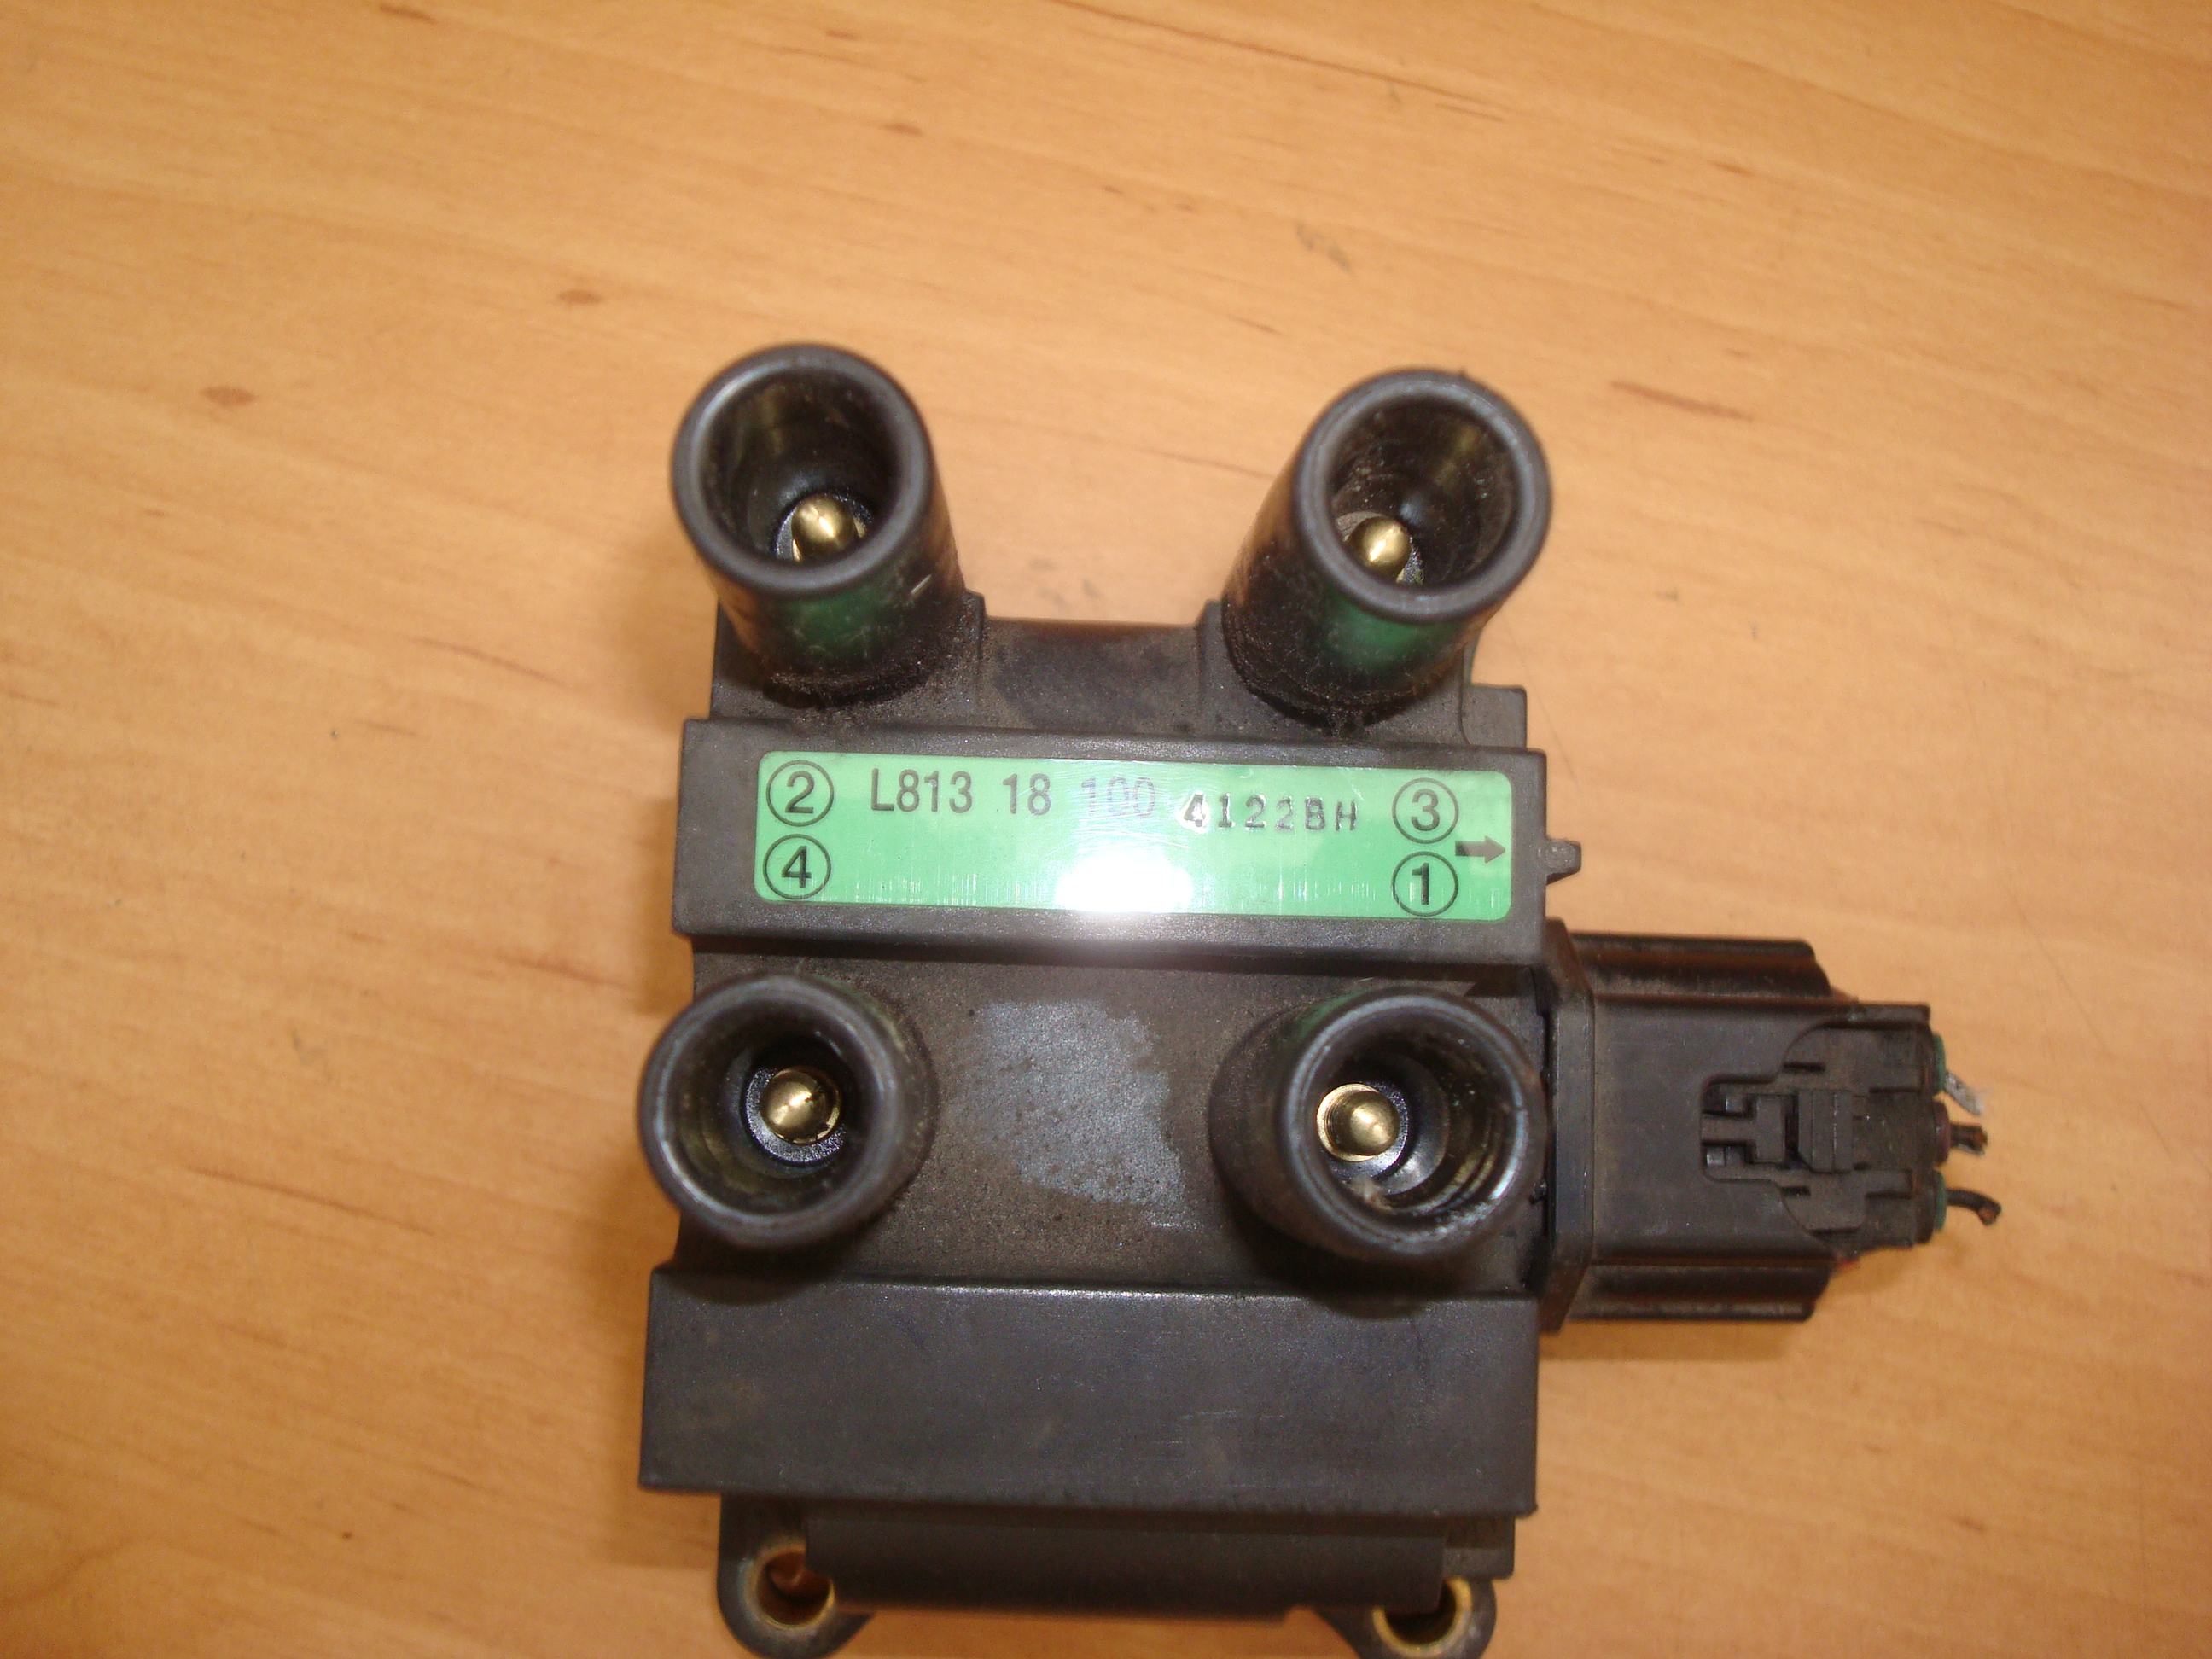 Mazda 6 20 Ignition Coil Pack L81318100 Jeep Article